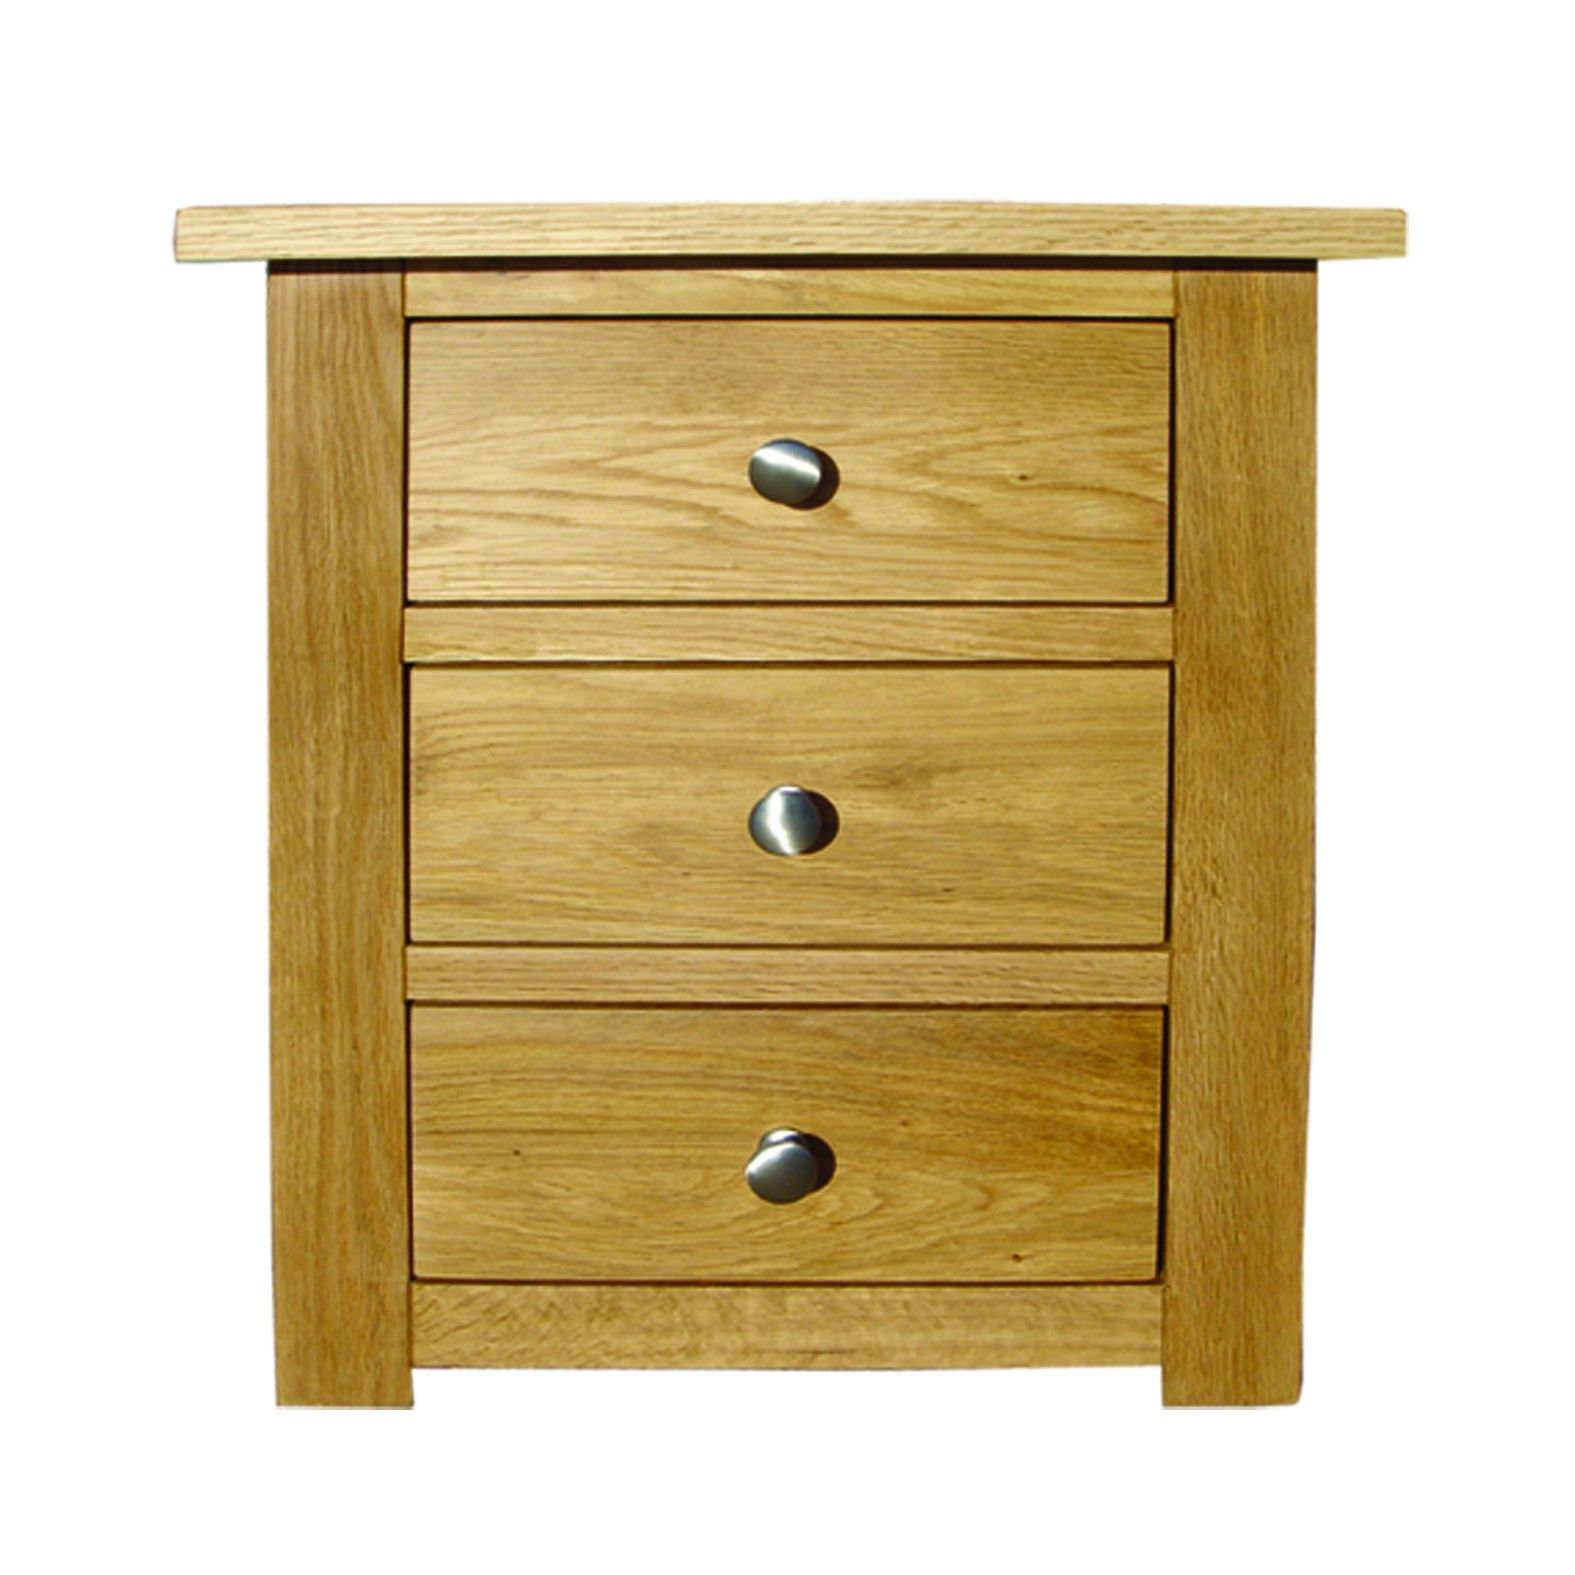 Stylish solid oak bedside table with 3 drawers. The simple yet elegant looking design also displays a touch of class and although simplistic in design it doesn't fail to please the eye and is very aesthetically pleasing.